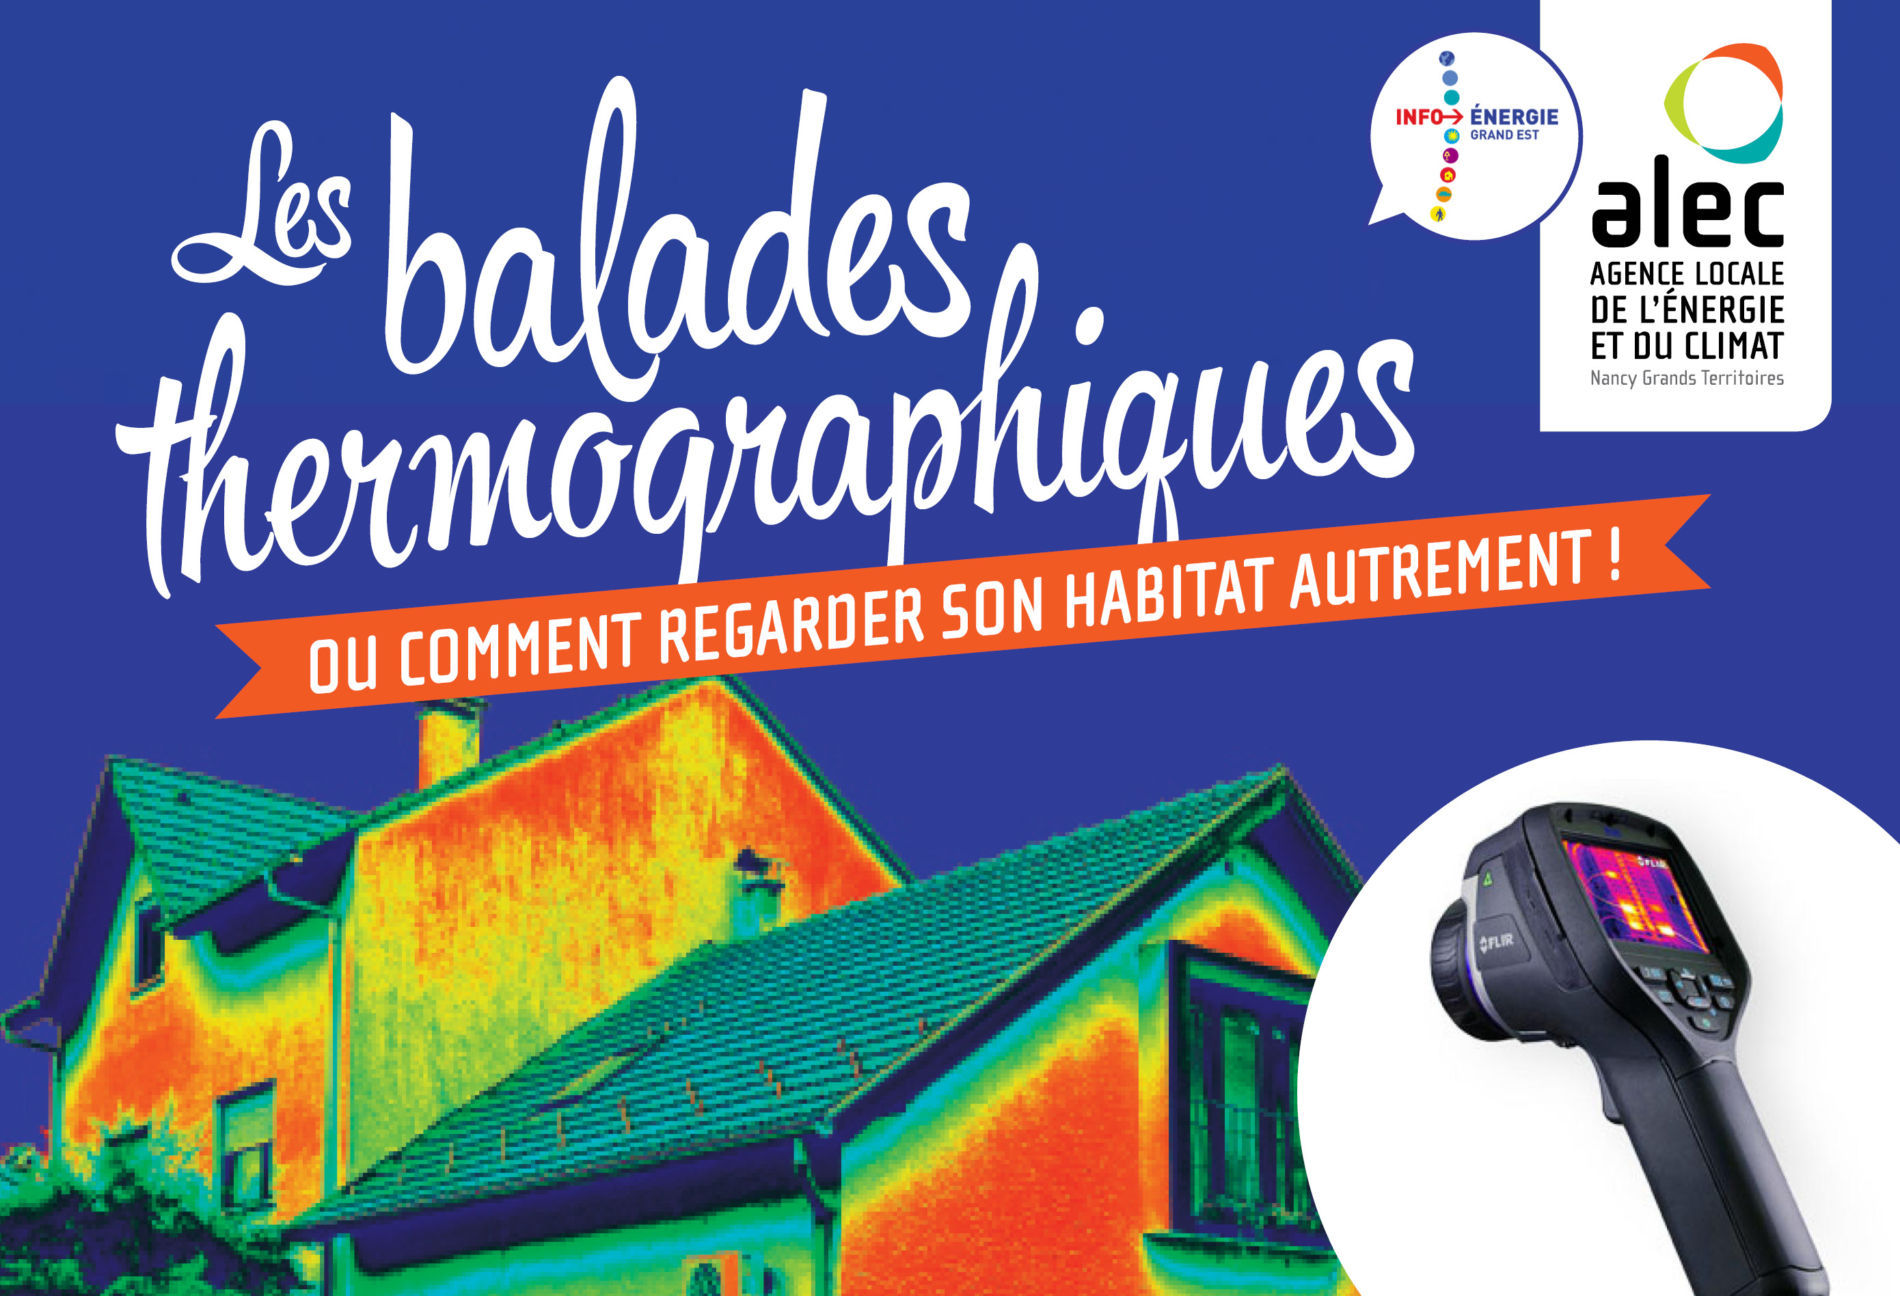 Balade thermographique Haraucourt